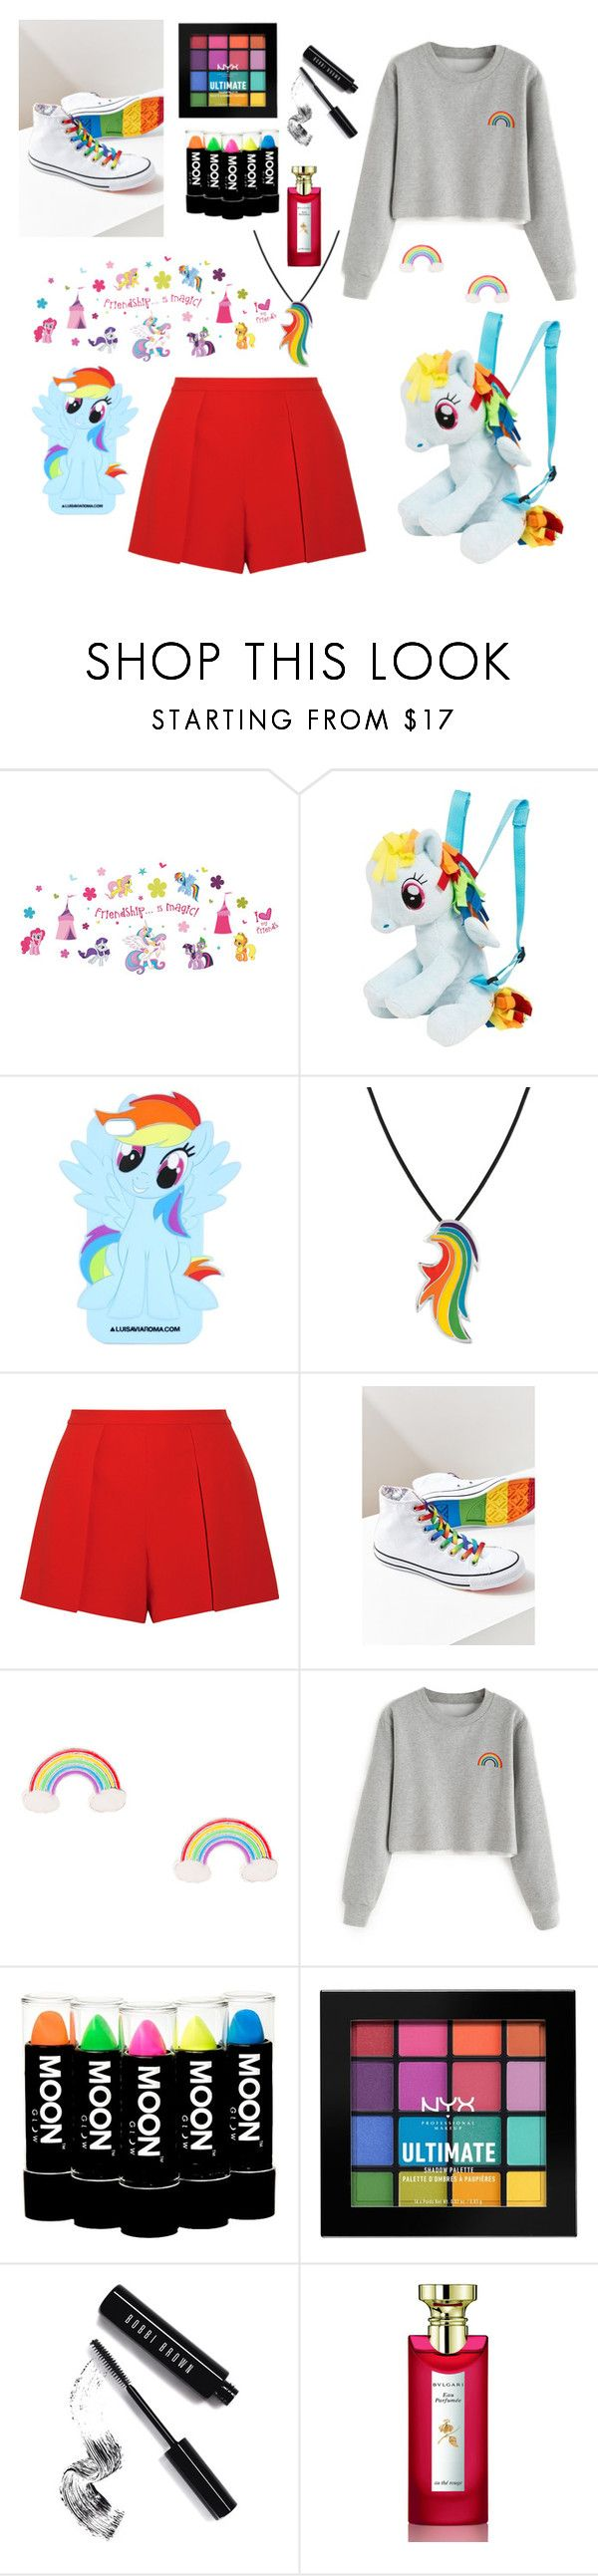 """""""Outfit for Comic Con"""" by valerija-snowite ❤ liked on Polyvore featuring Brewster Home Fashions, My Little Pony, Alice + Olivia, Converse, NYX, Bobbi Brown Cosmetics and Bulgari"""